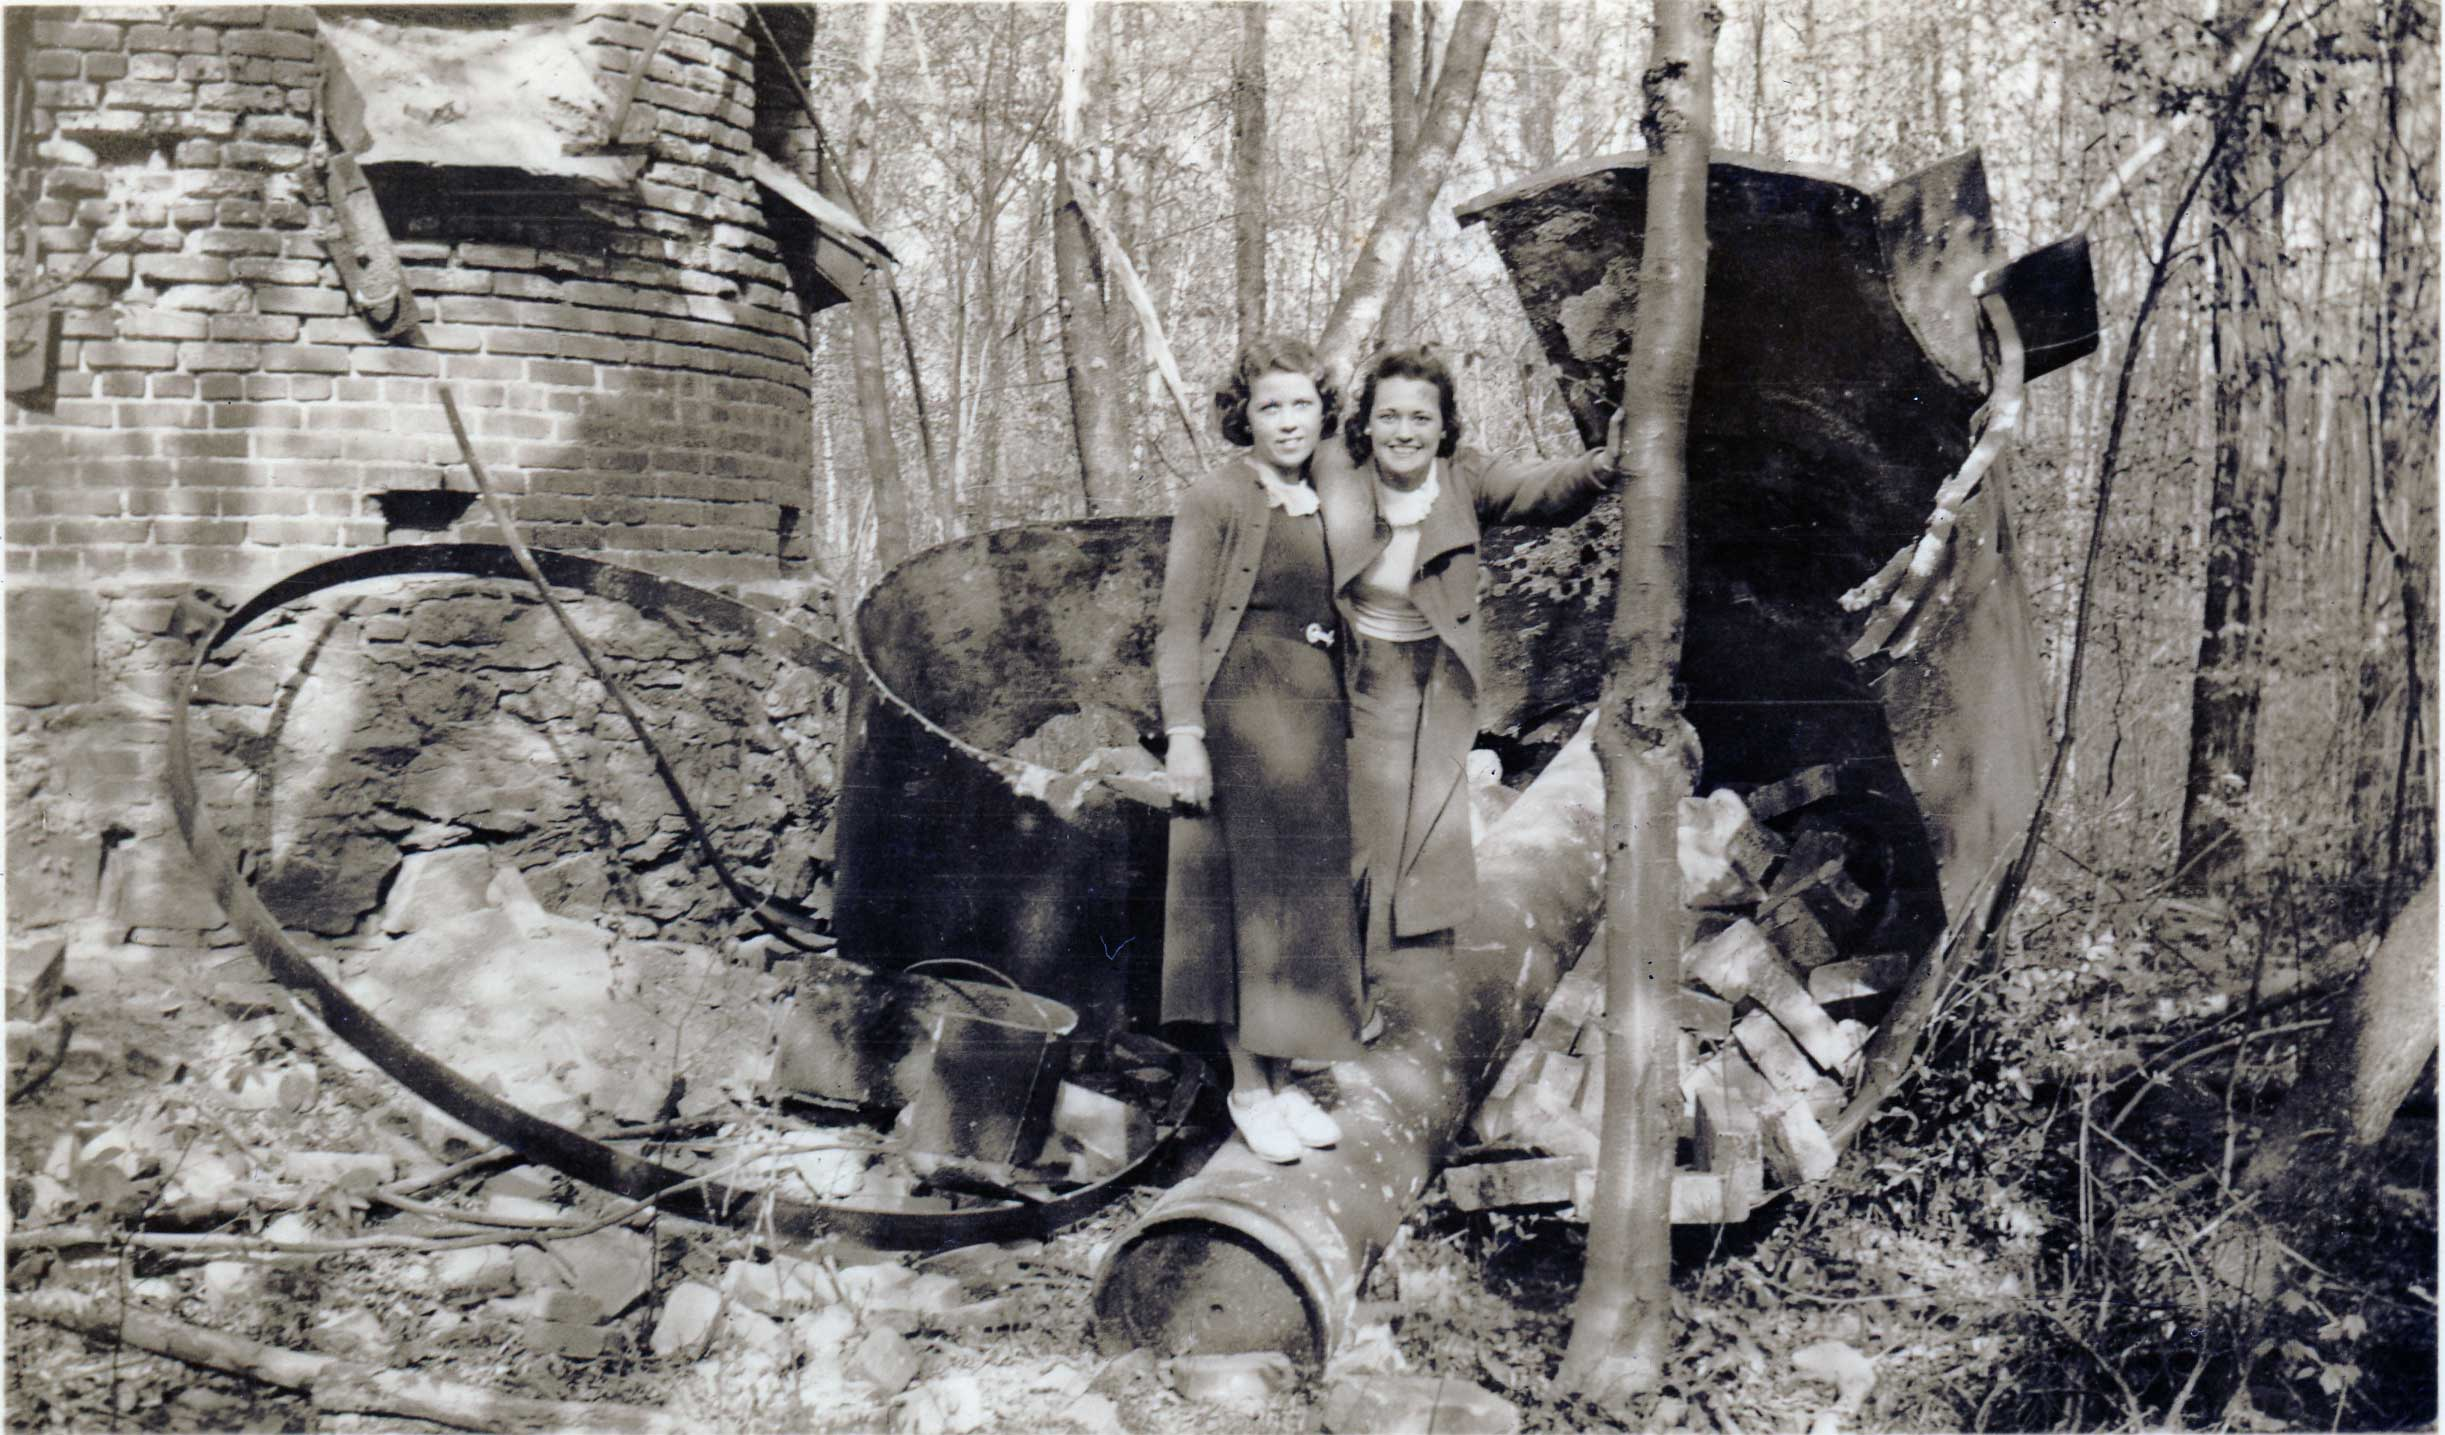 Dorothy Rogallski and Beatrice Wyckoff, 1932, sitting atop an iron roaster in Chester, NJ